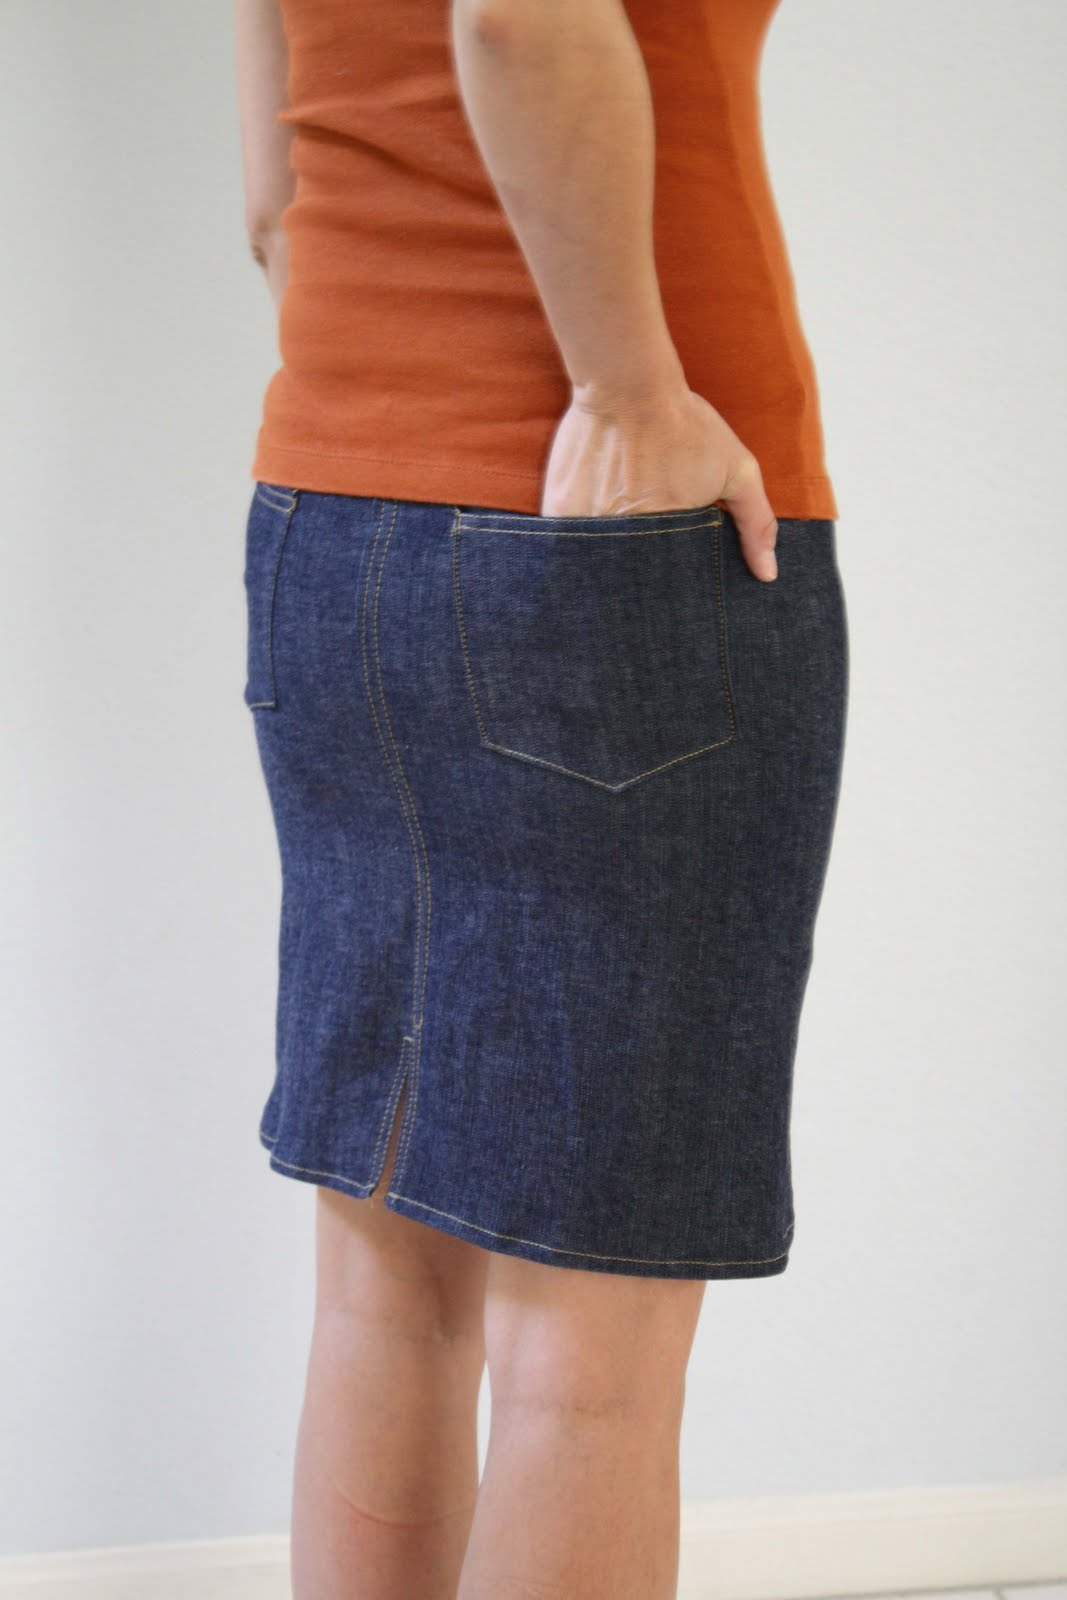 Denim skirt tutorial - Melly Sews